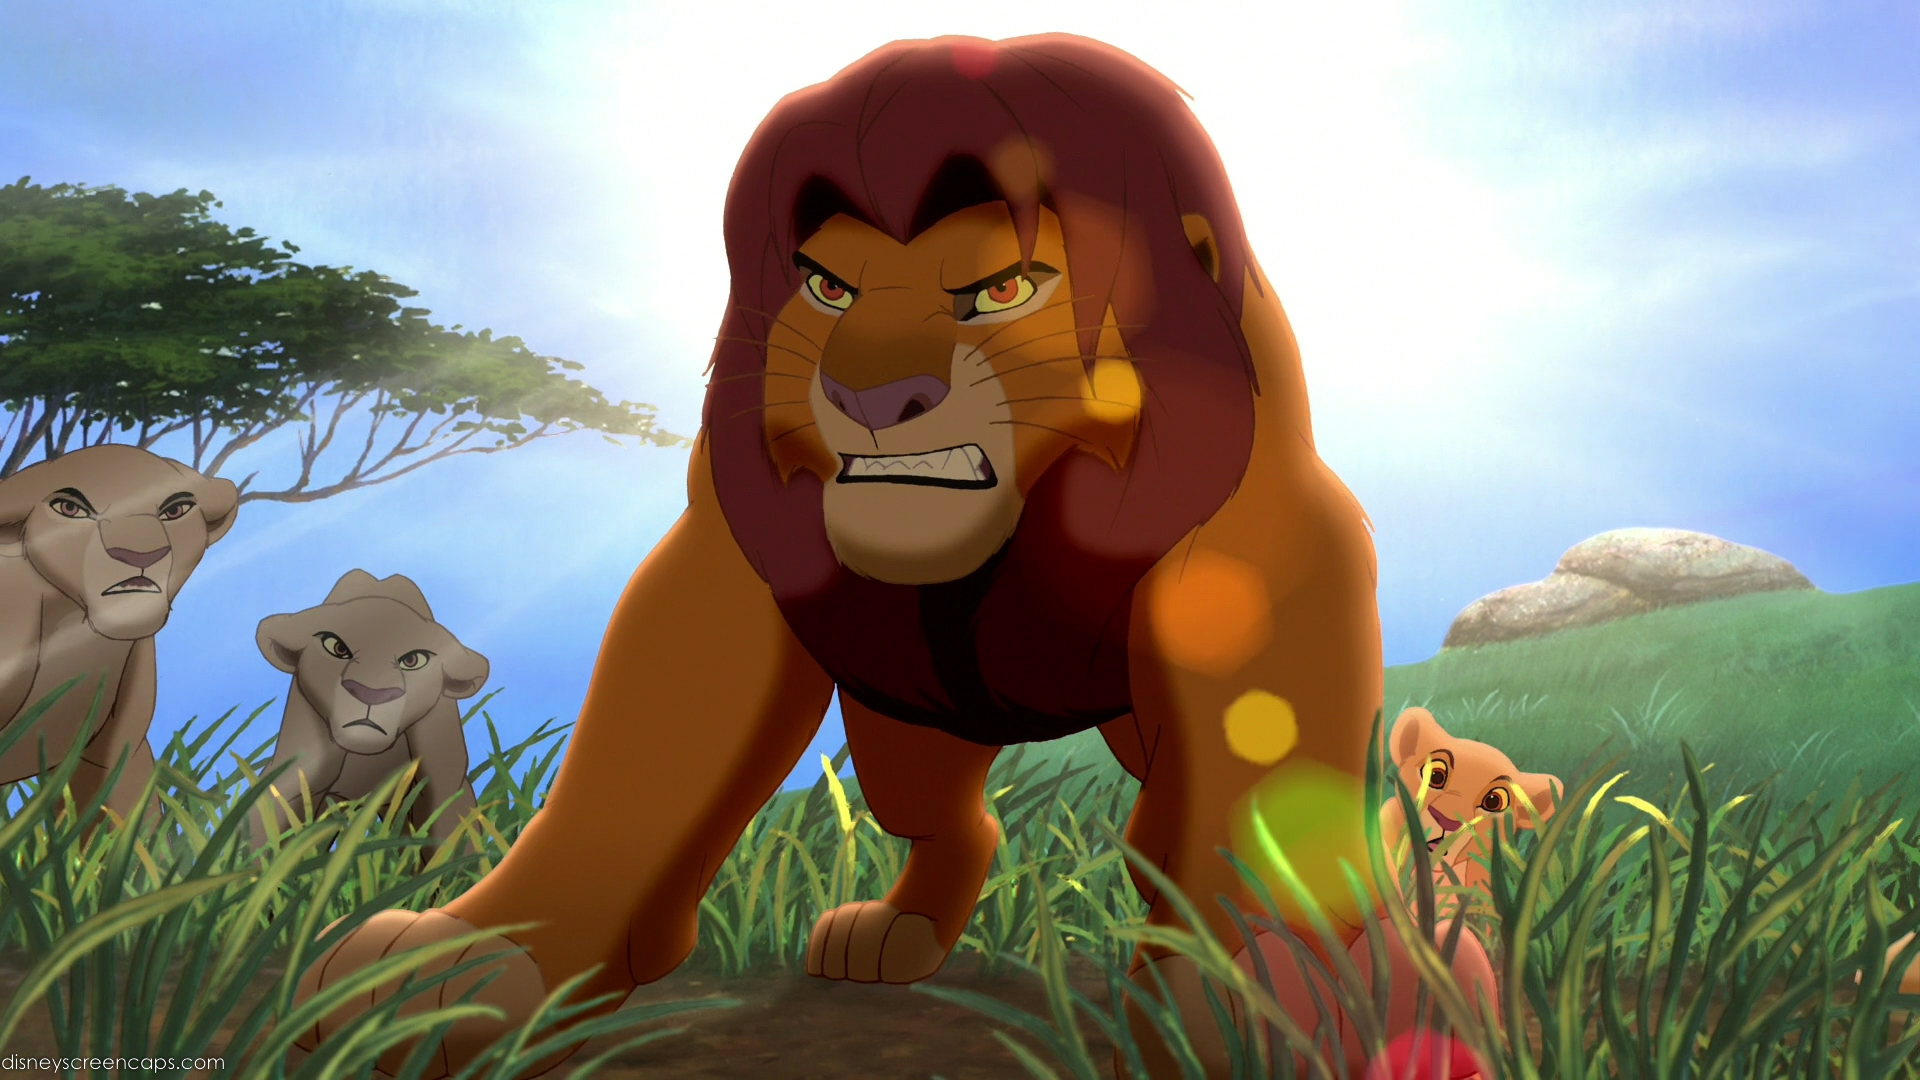 Lion2-disneyscreencaps.com-1482.jpg